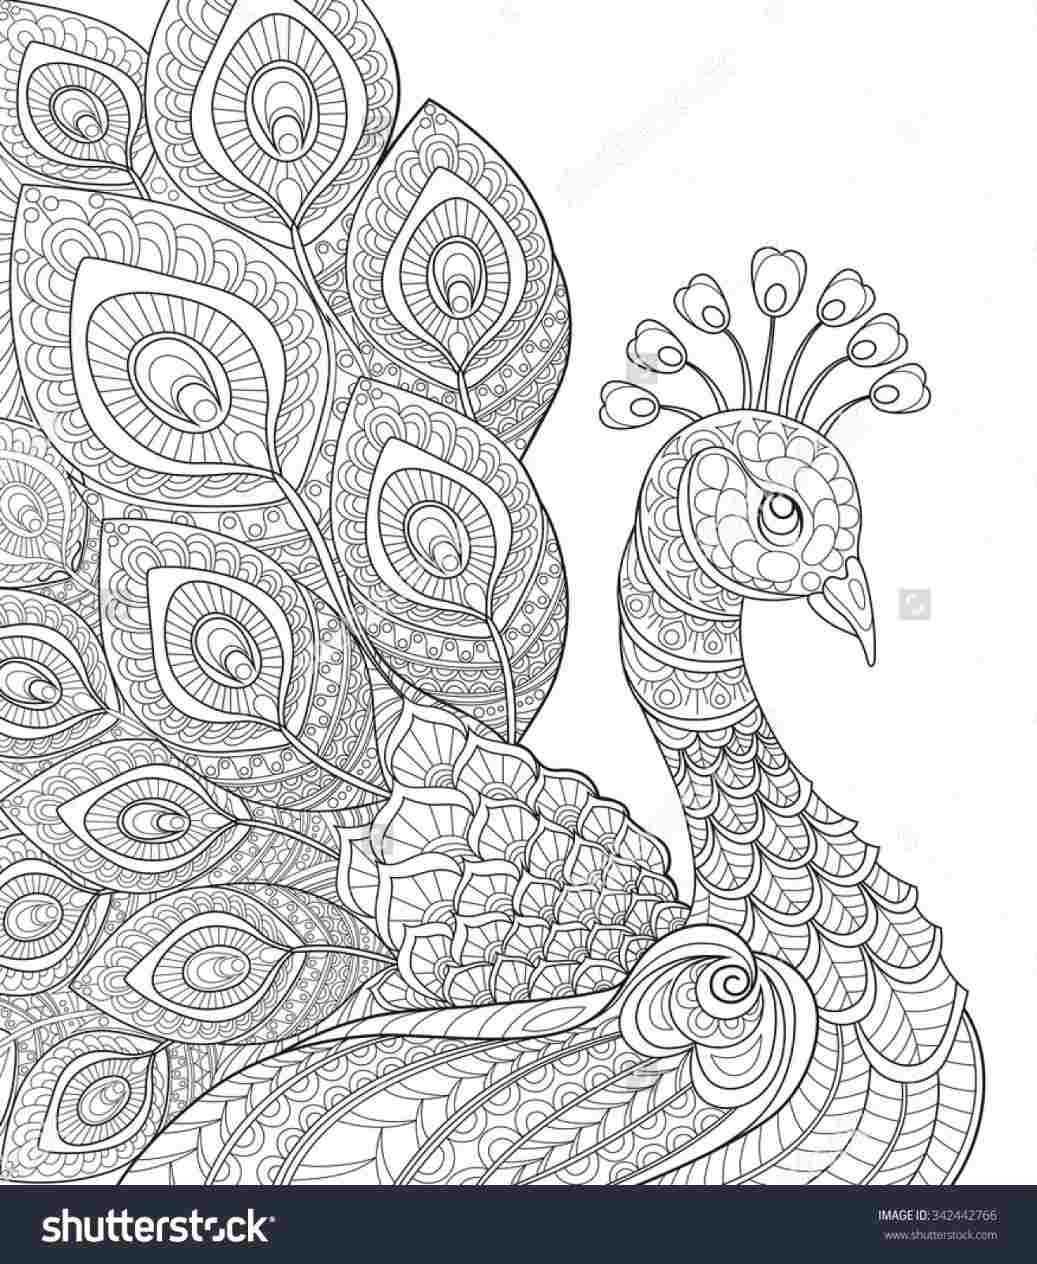 Peacock Embroidery Patterns Wheeler Embroidery Patterns Design Rhpinterestcom Laura Colouring